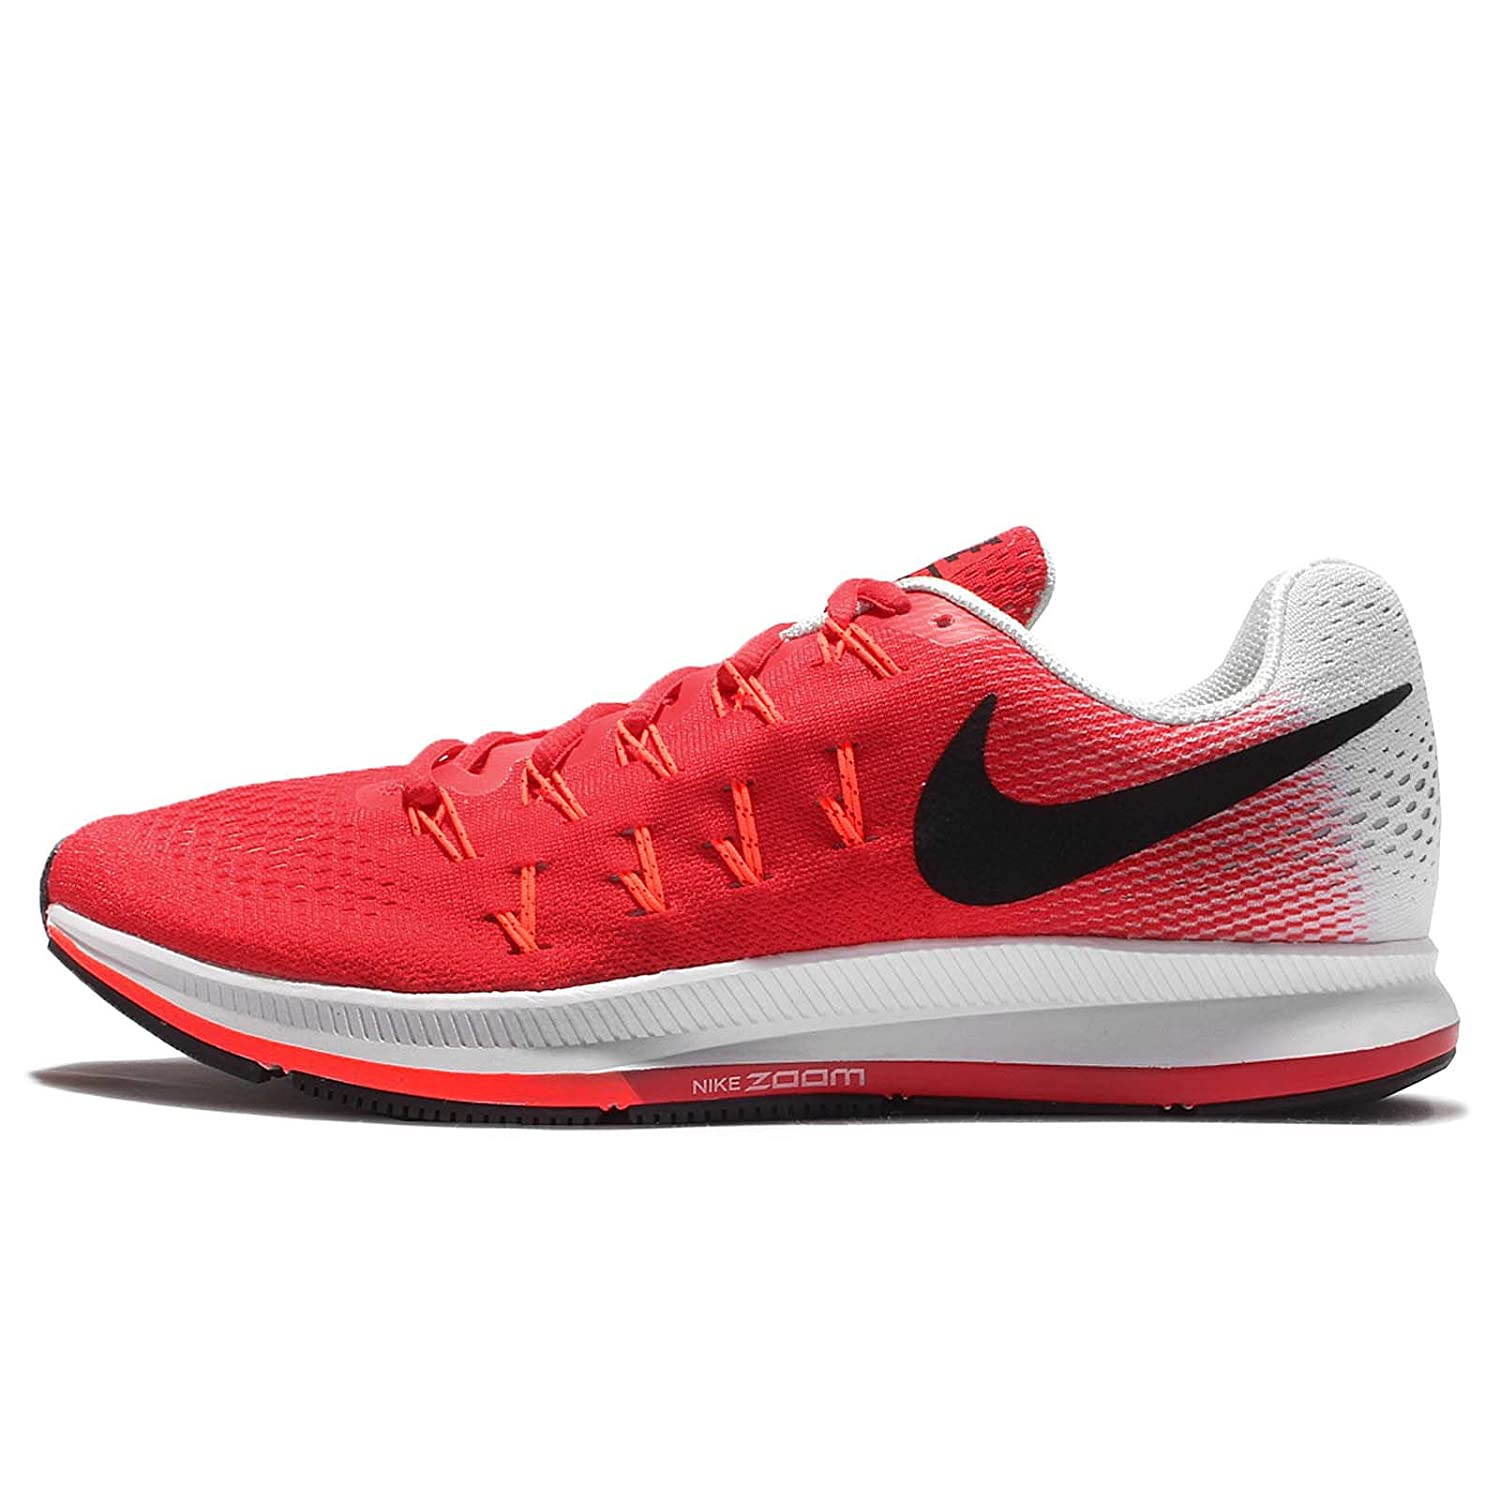 Nike Men's Air Zoom Pegasus 33 B001CZ1MGS 10.5 D(M) US|Action Red/Black-pure Platinum-total Crimson